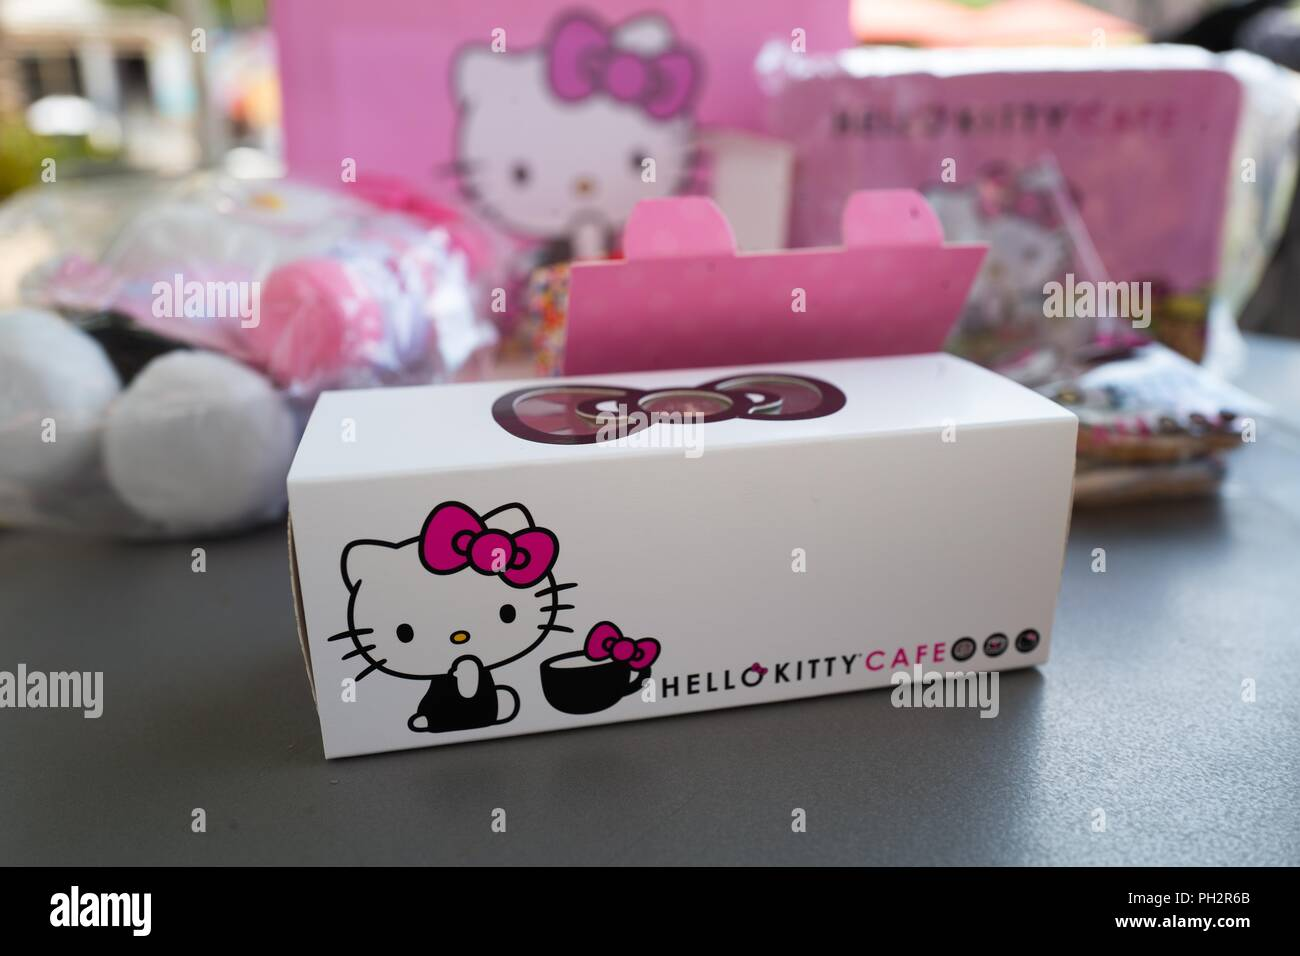 bde556030 Merchandise on display at the Hello Kitty Cafe, a newly opened cafe  operated by Japanese